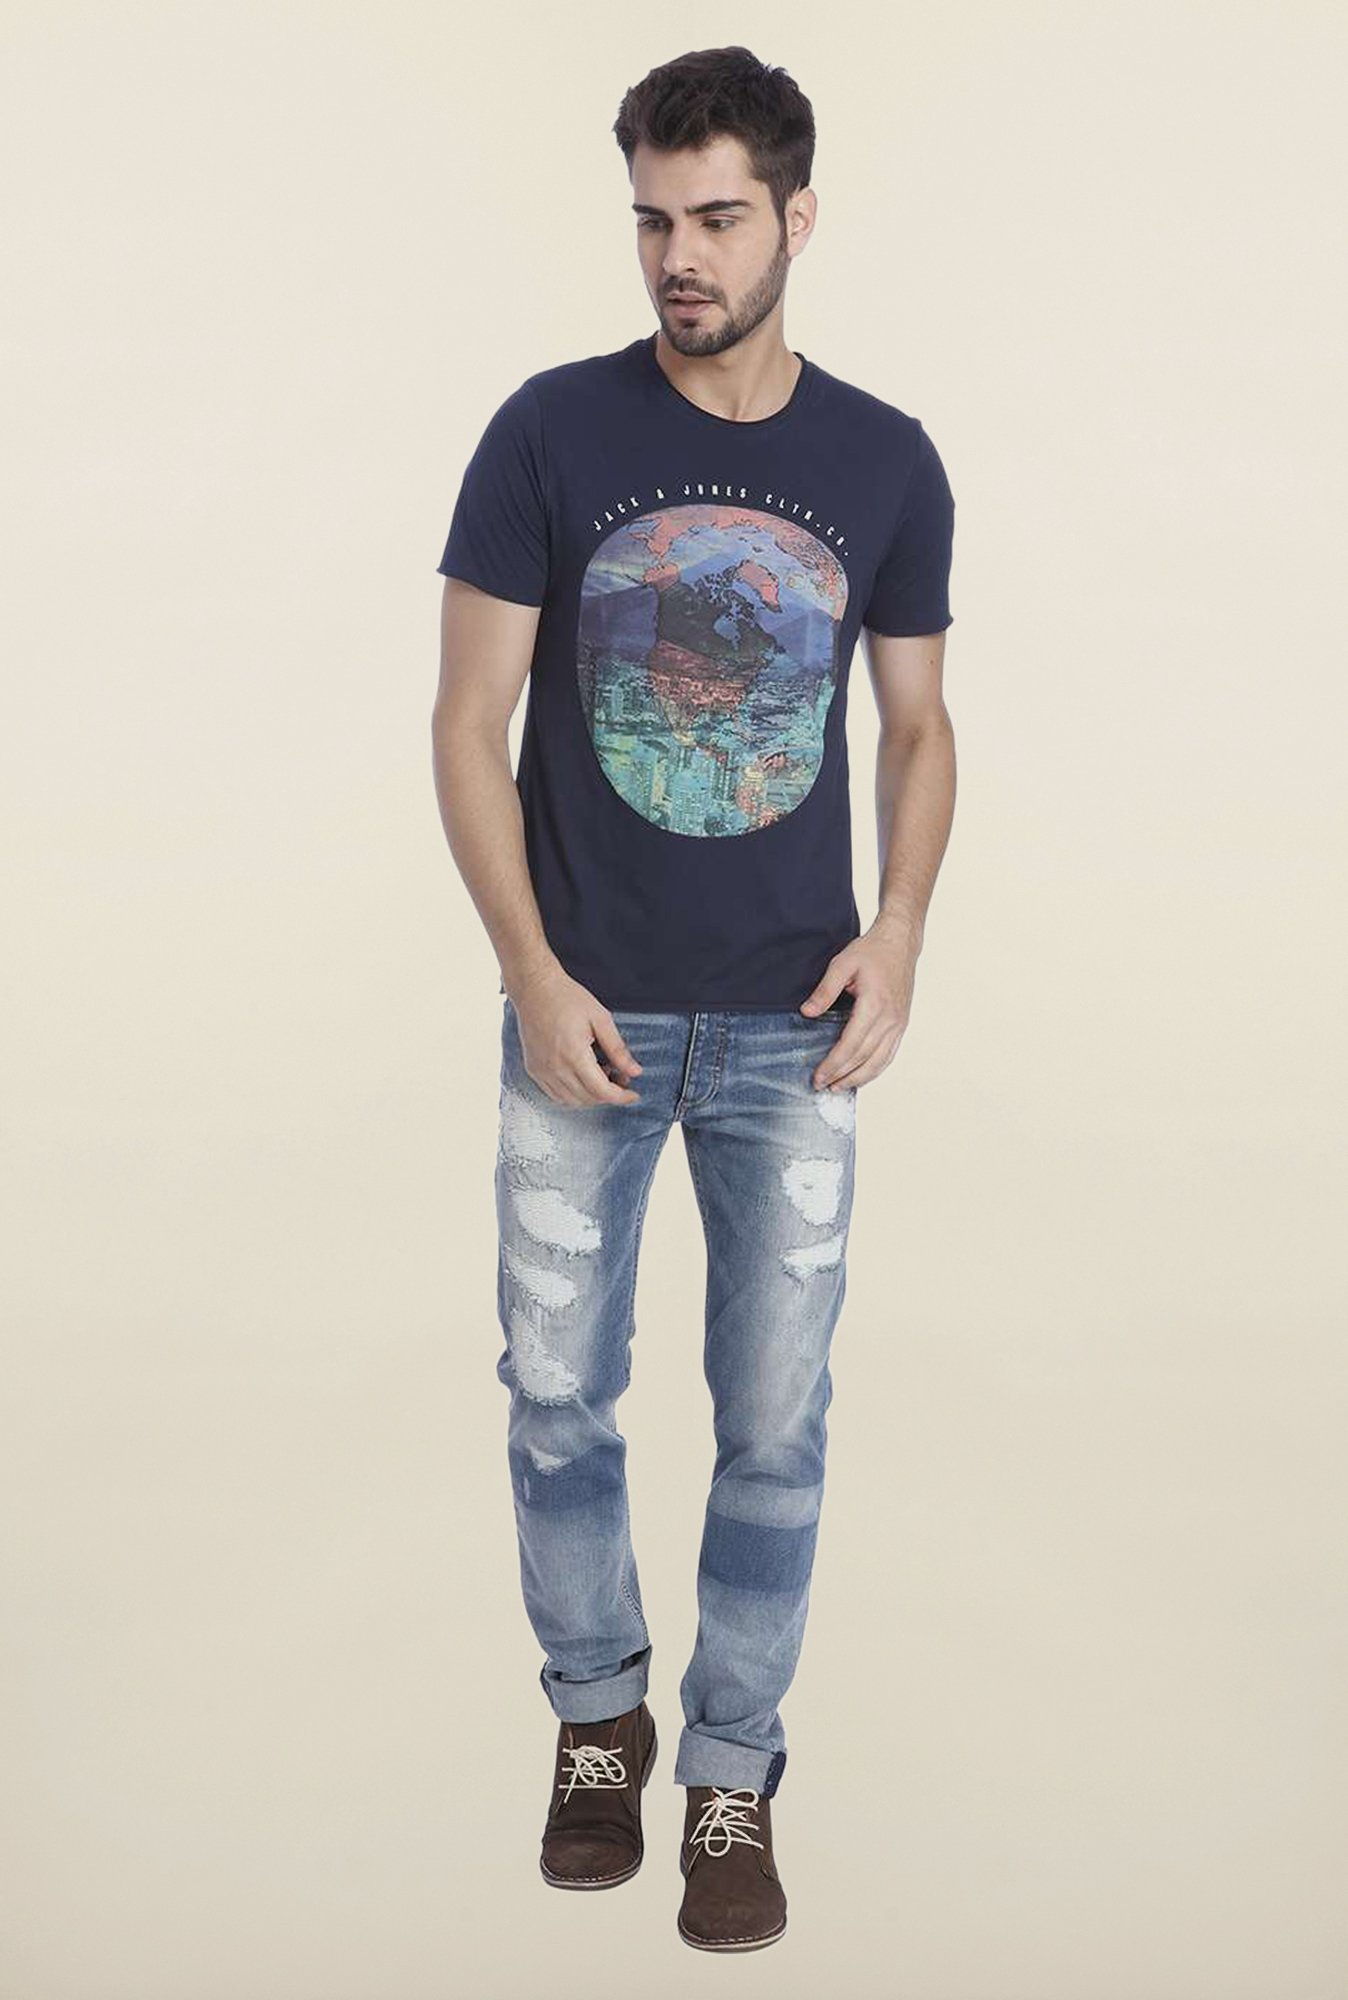 Jack & Jones Navy Graphic Crew Neck T Shirt